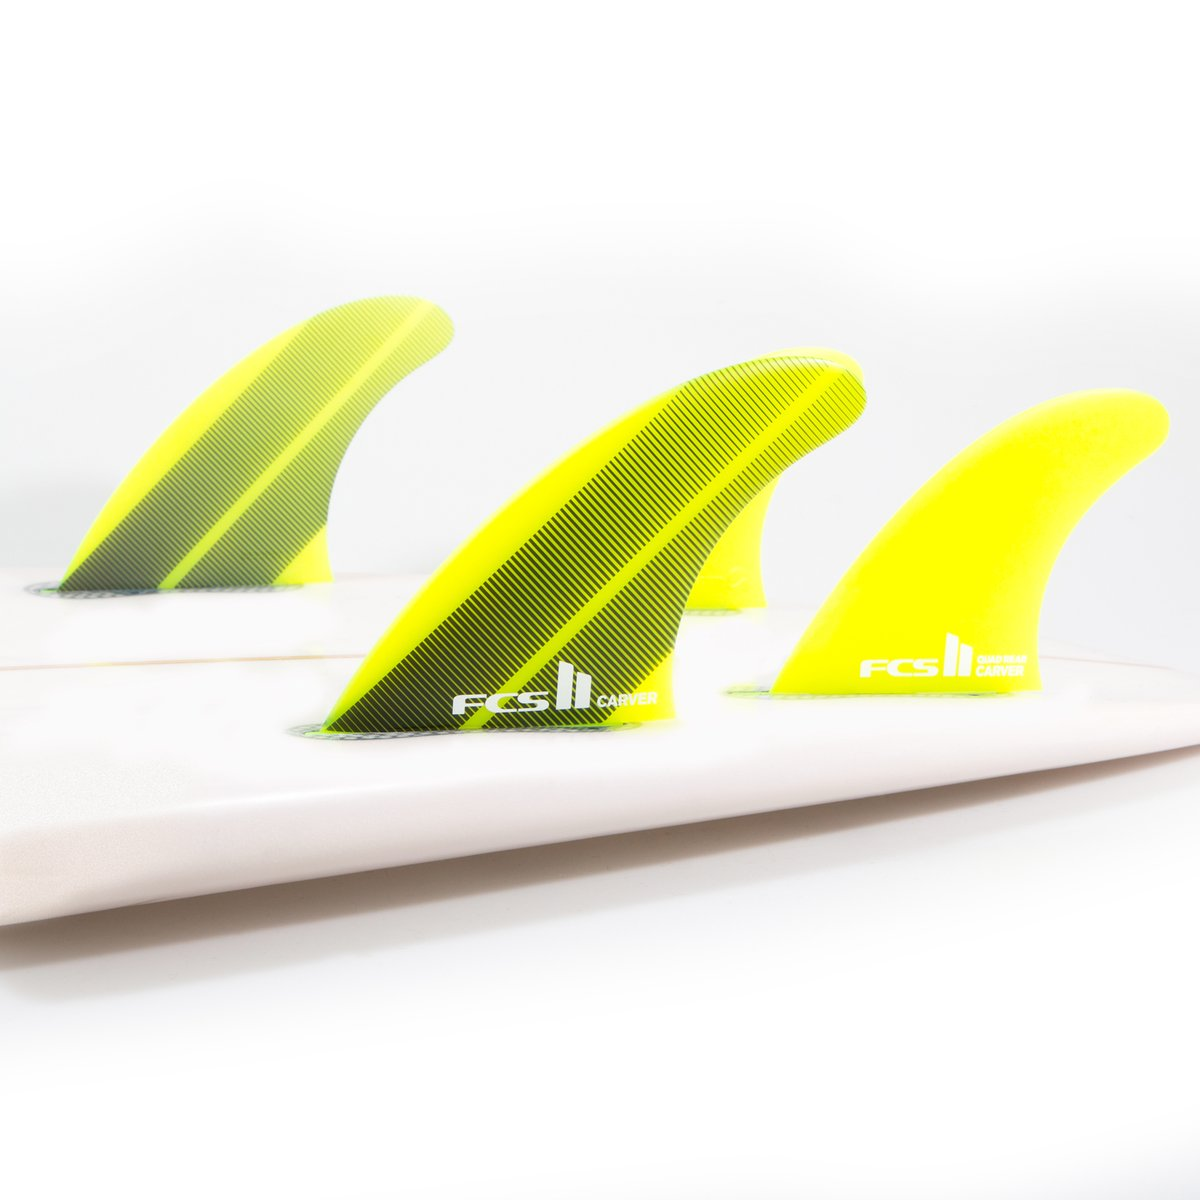 FCS II Carver Neo Glass Thruster Fin Set - Large